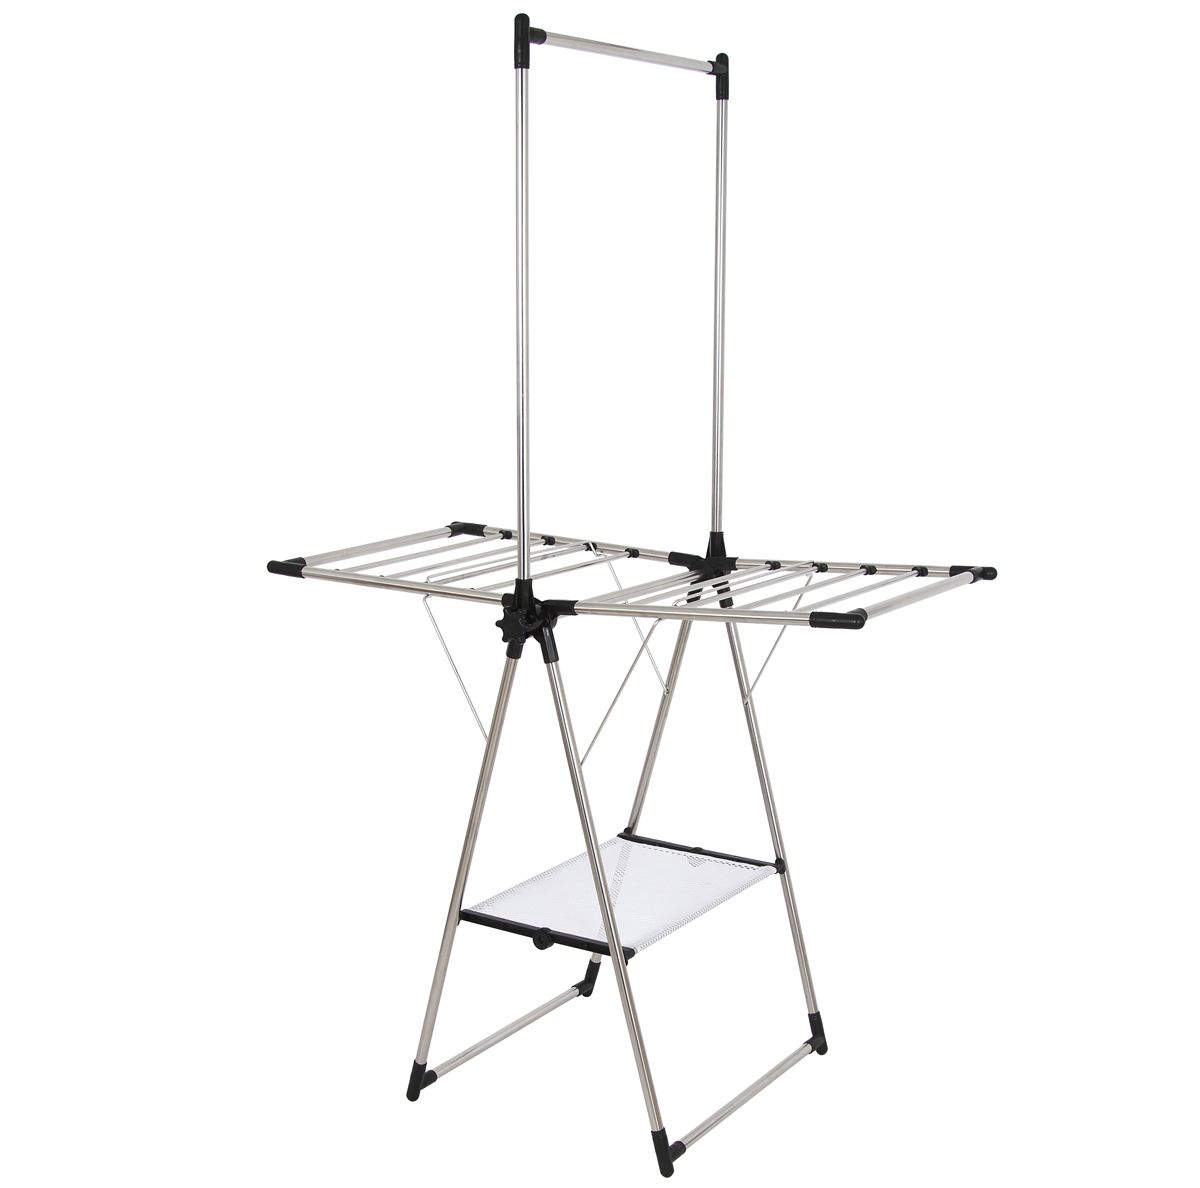 Outdoor Clothes Dryer , Portable Folding Clothes Dryer Rack